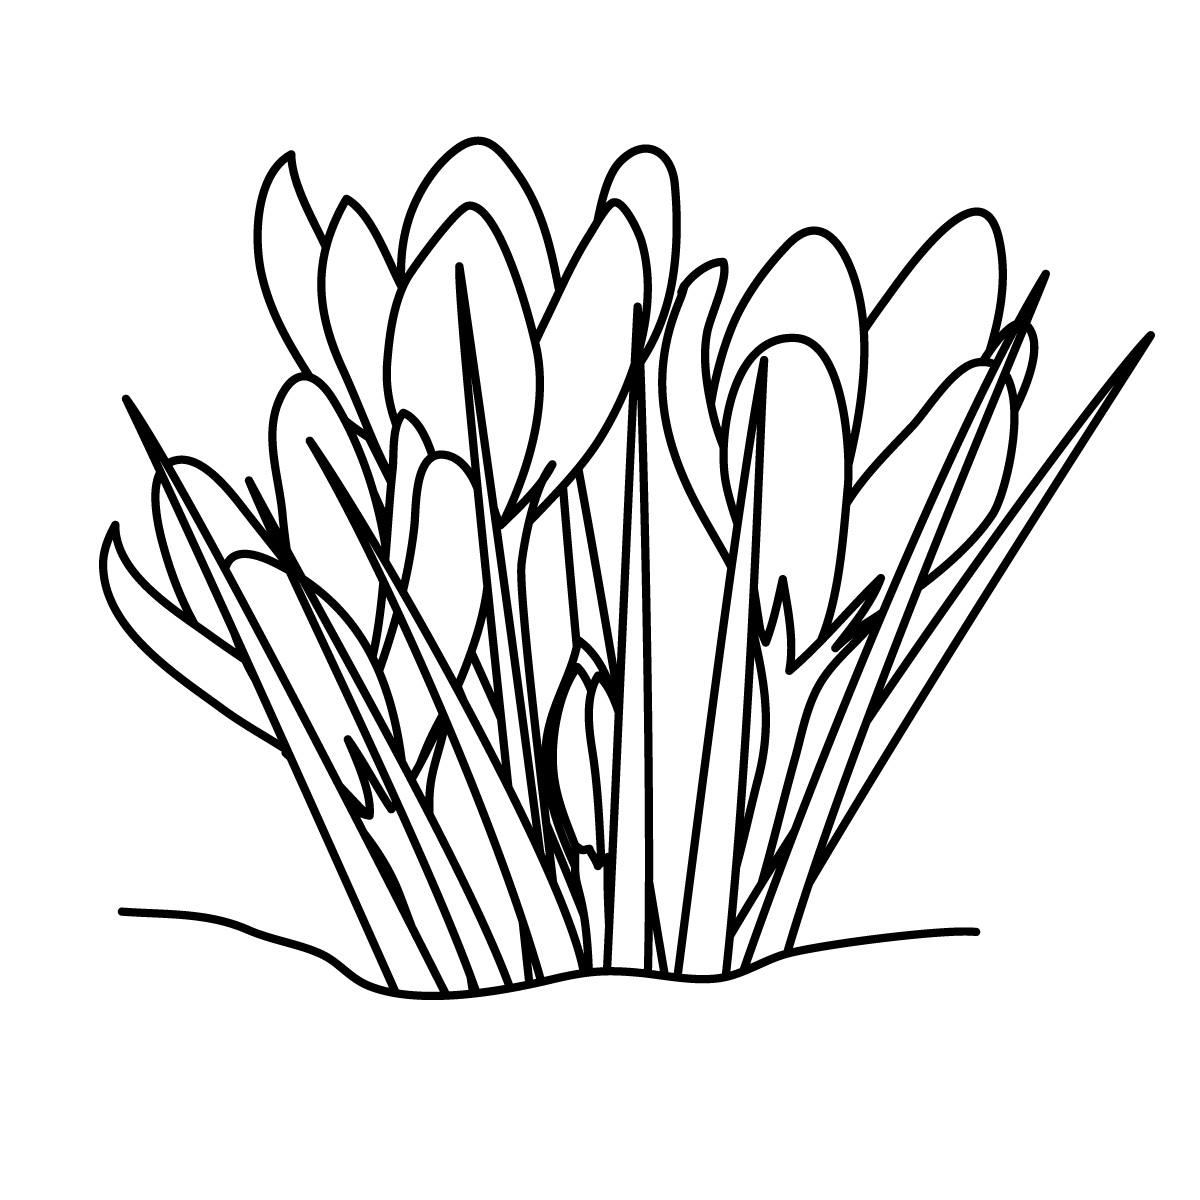 Daffodil Clipart Black And White | Clipart Panda - Free ...